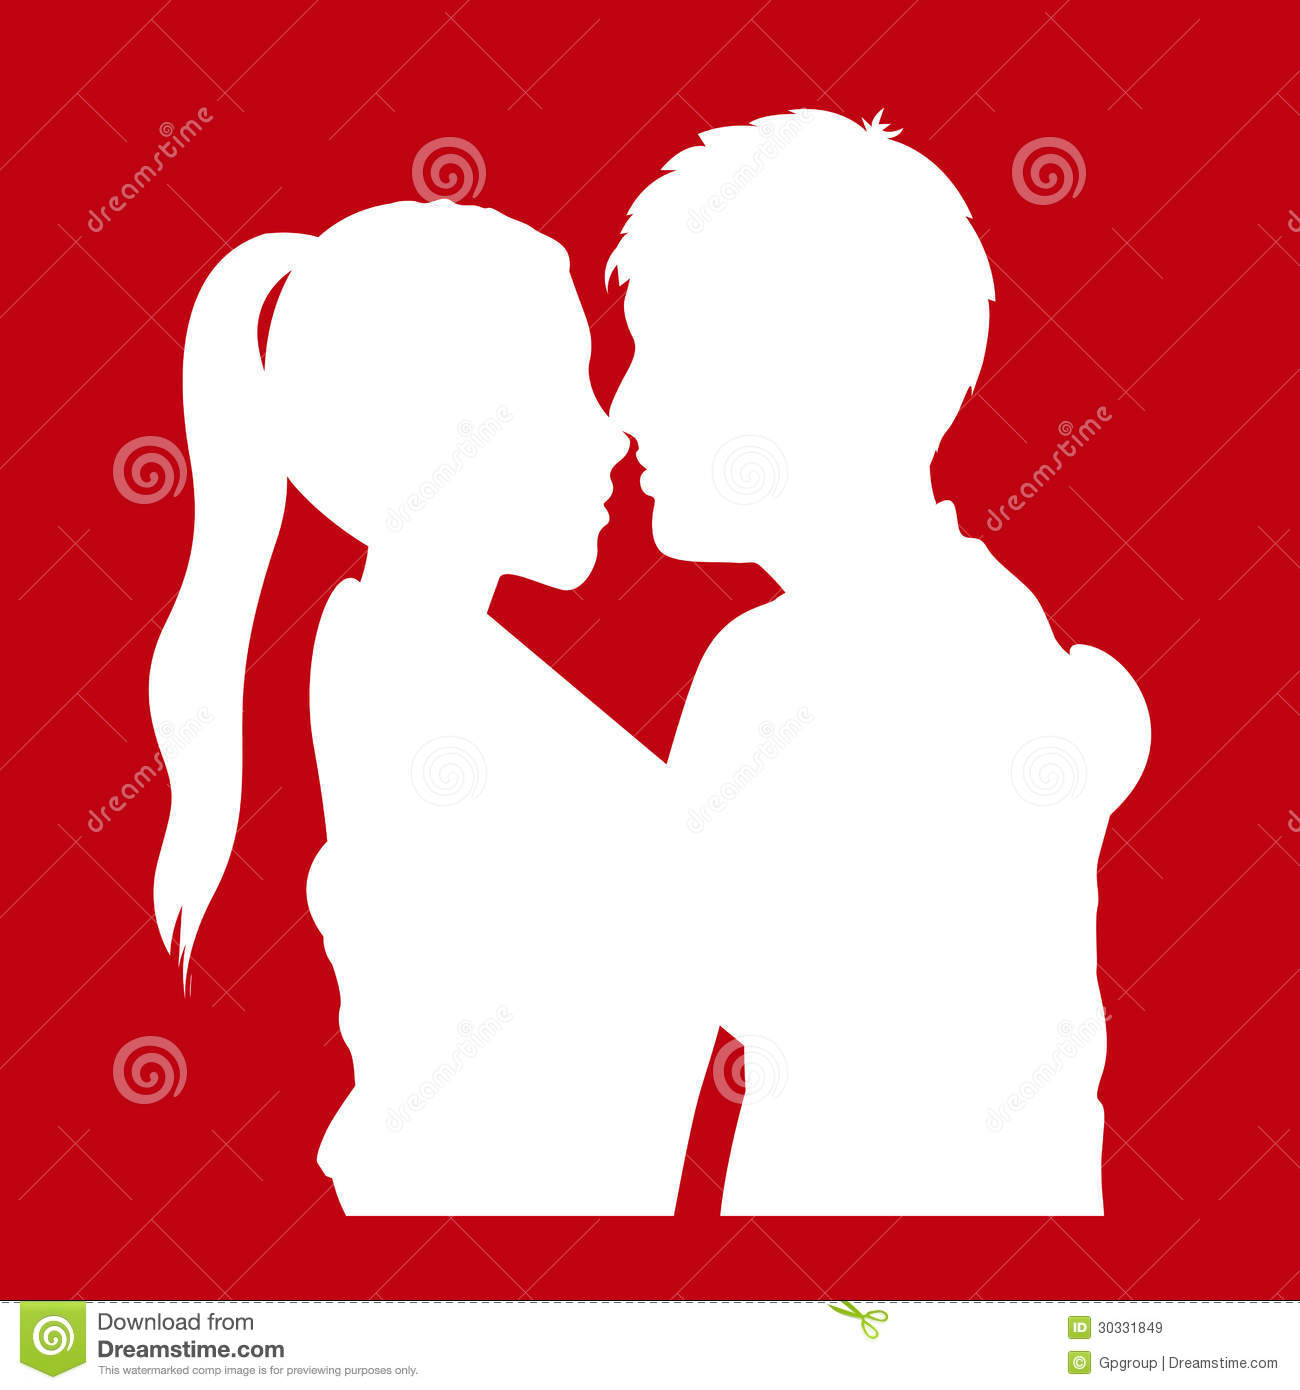 Love Icons Royalty Free Stock Images Image 30331849